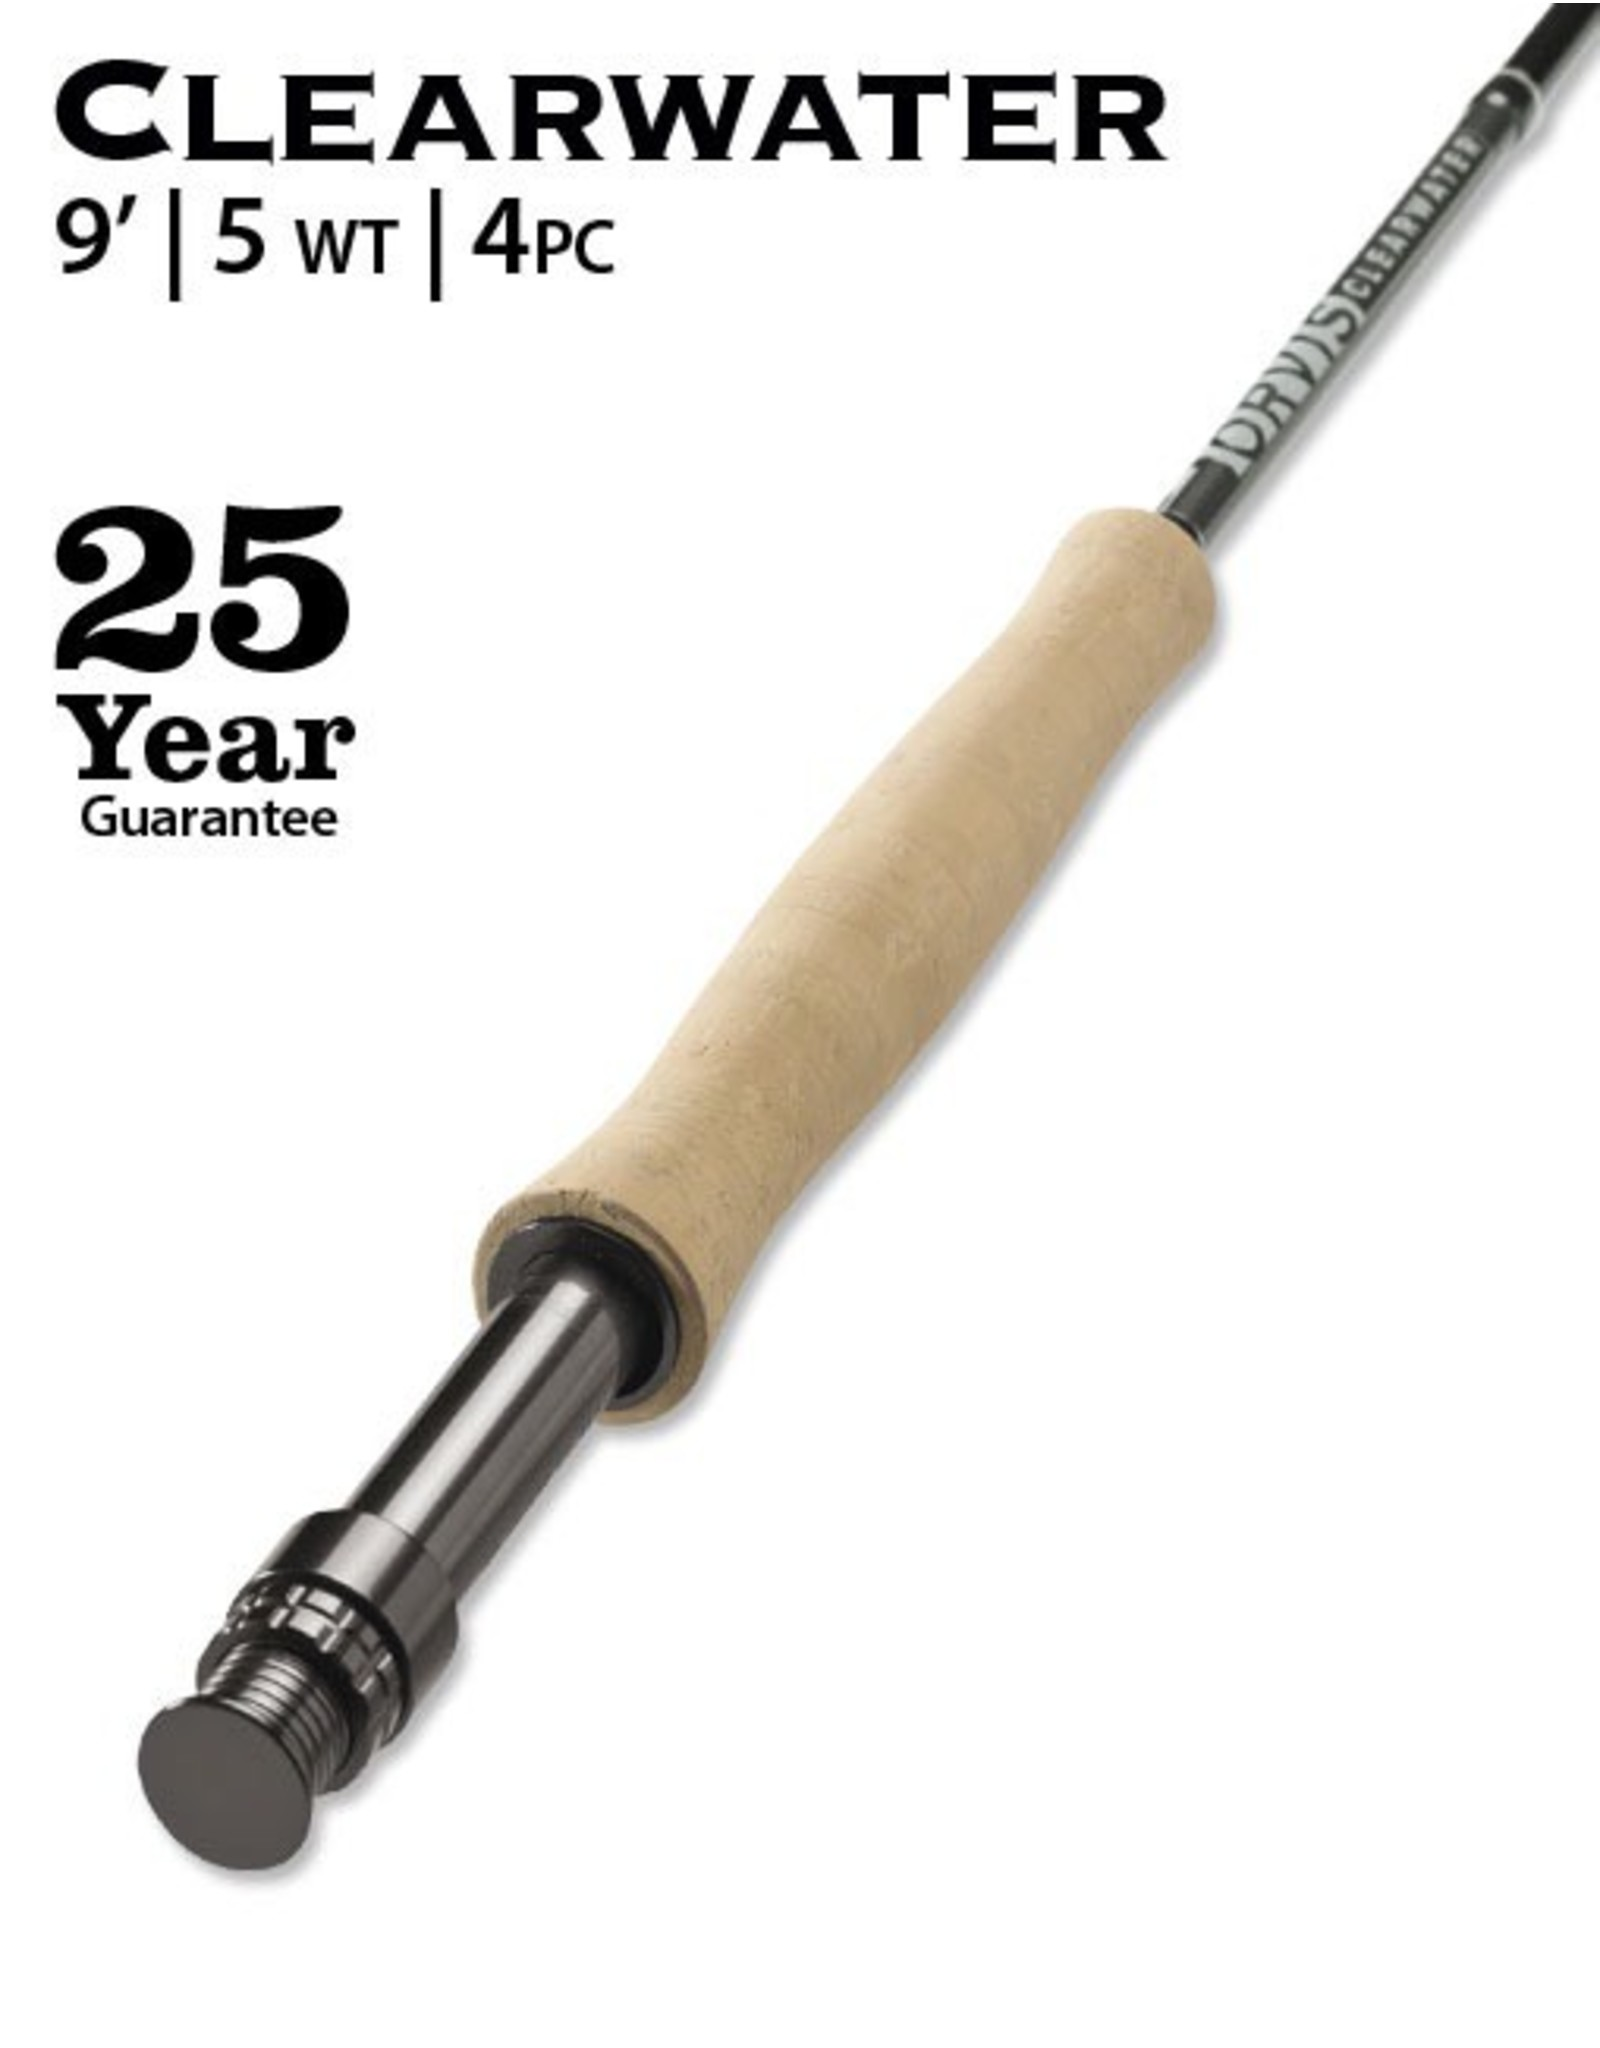 Orvis Clearwater 9' 6wt Fly Rod